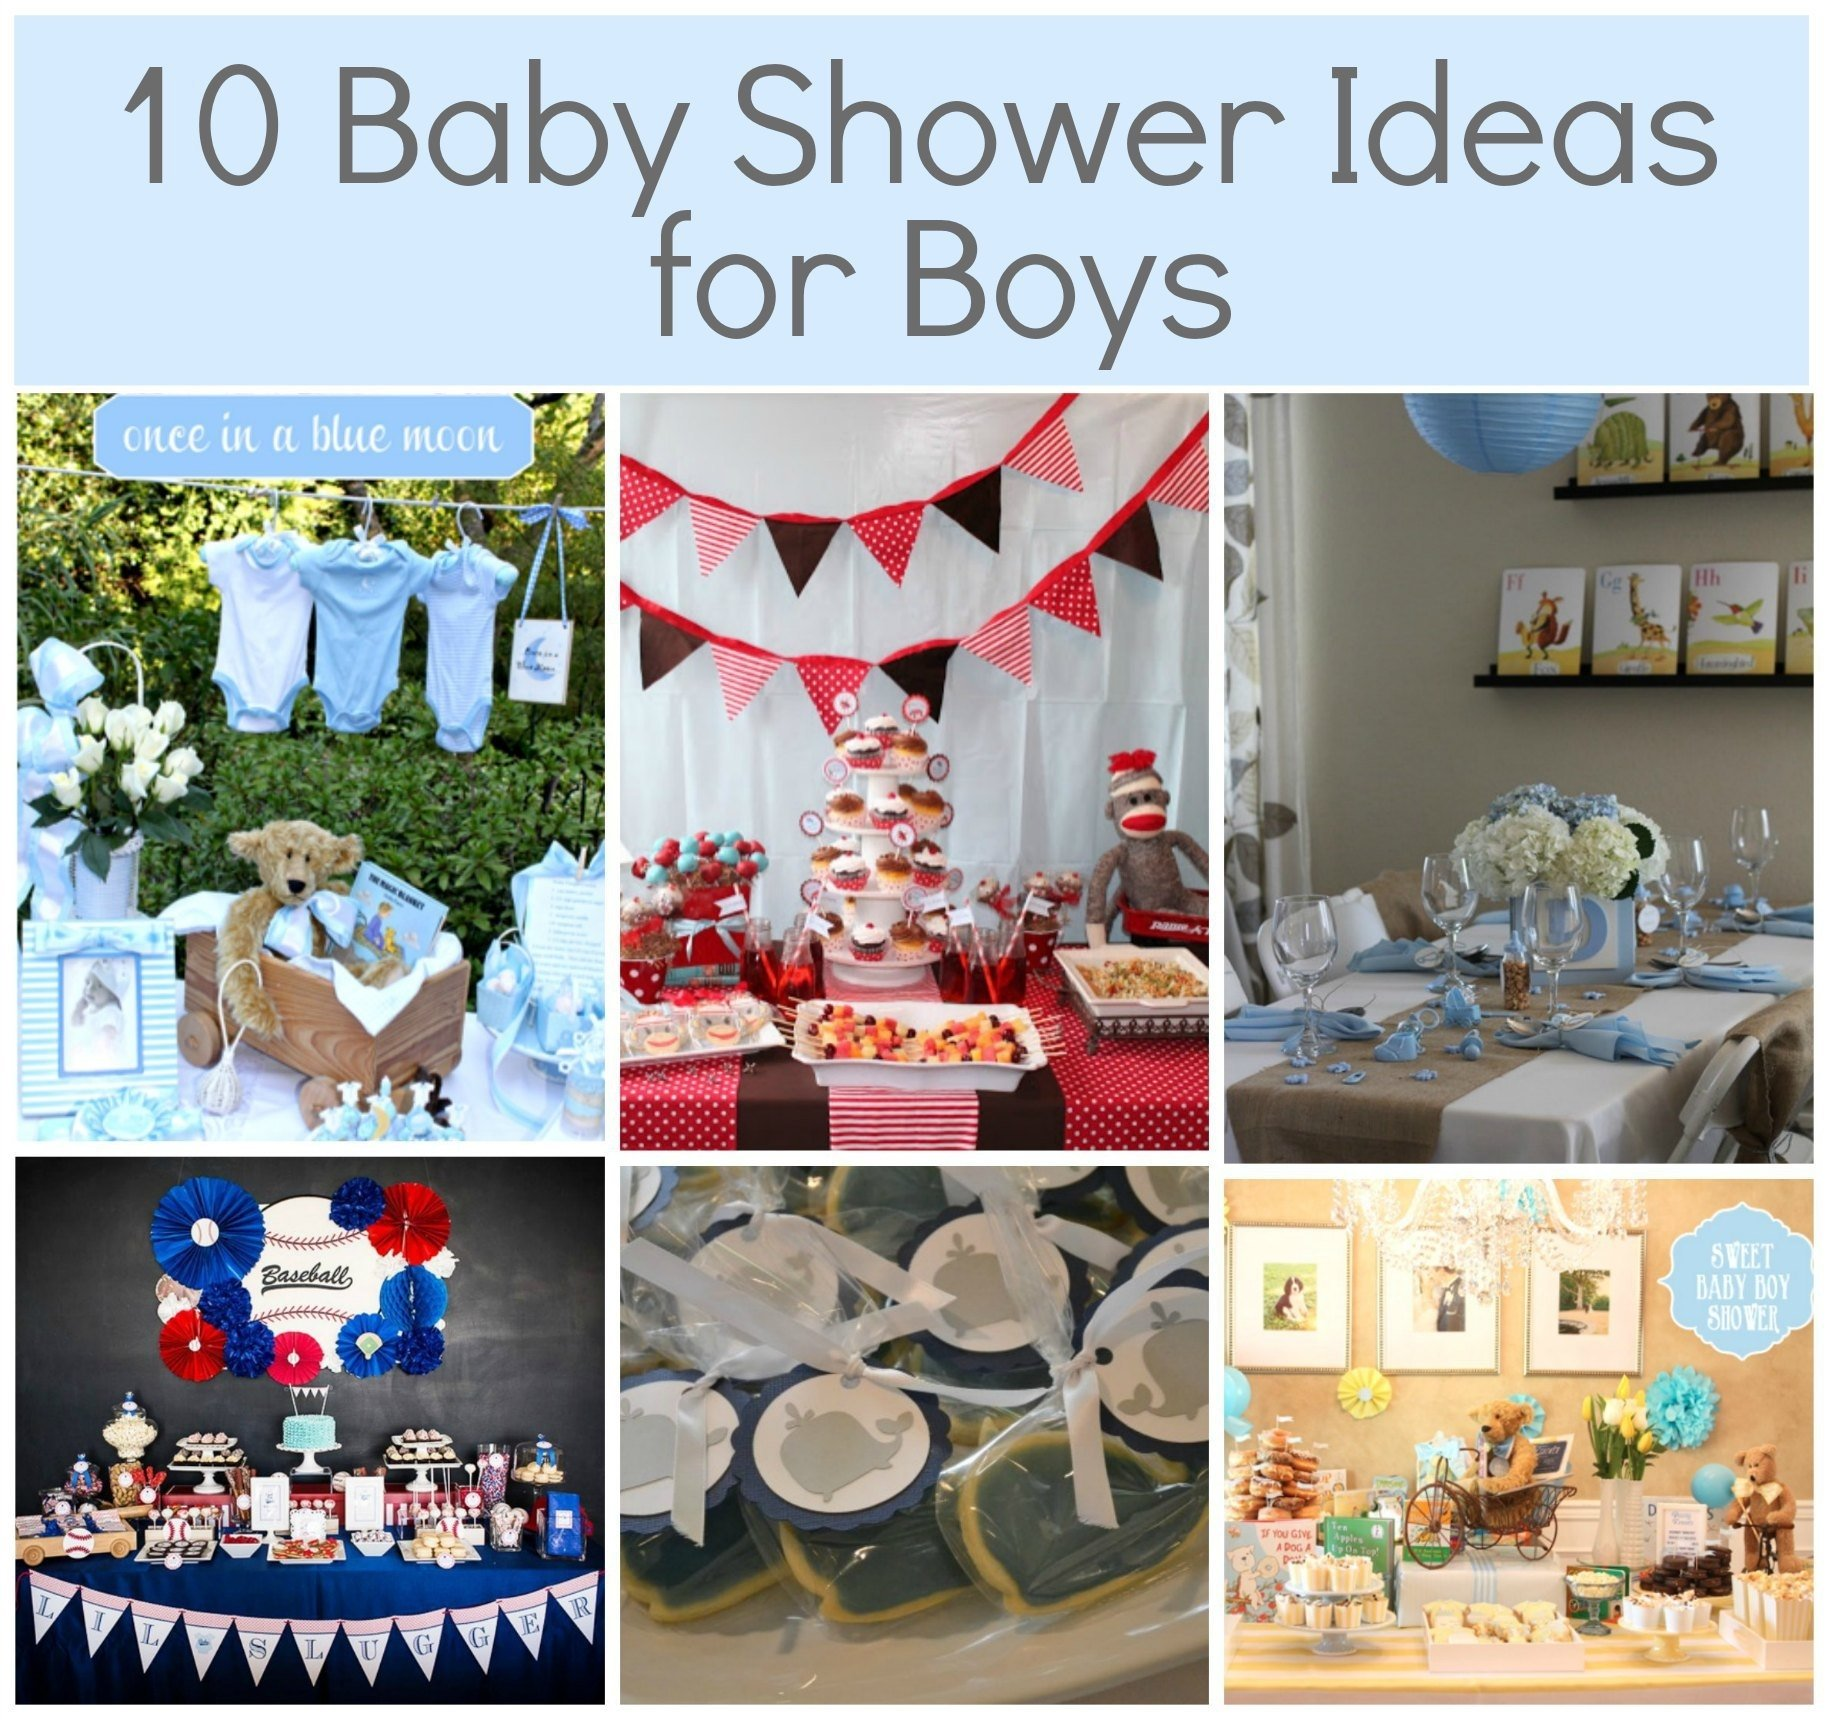 10 Perfect Baby Boy Baby Shower Themes Ideas Baby Shower Ideas For Boys  Themes Omega Center